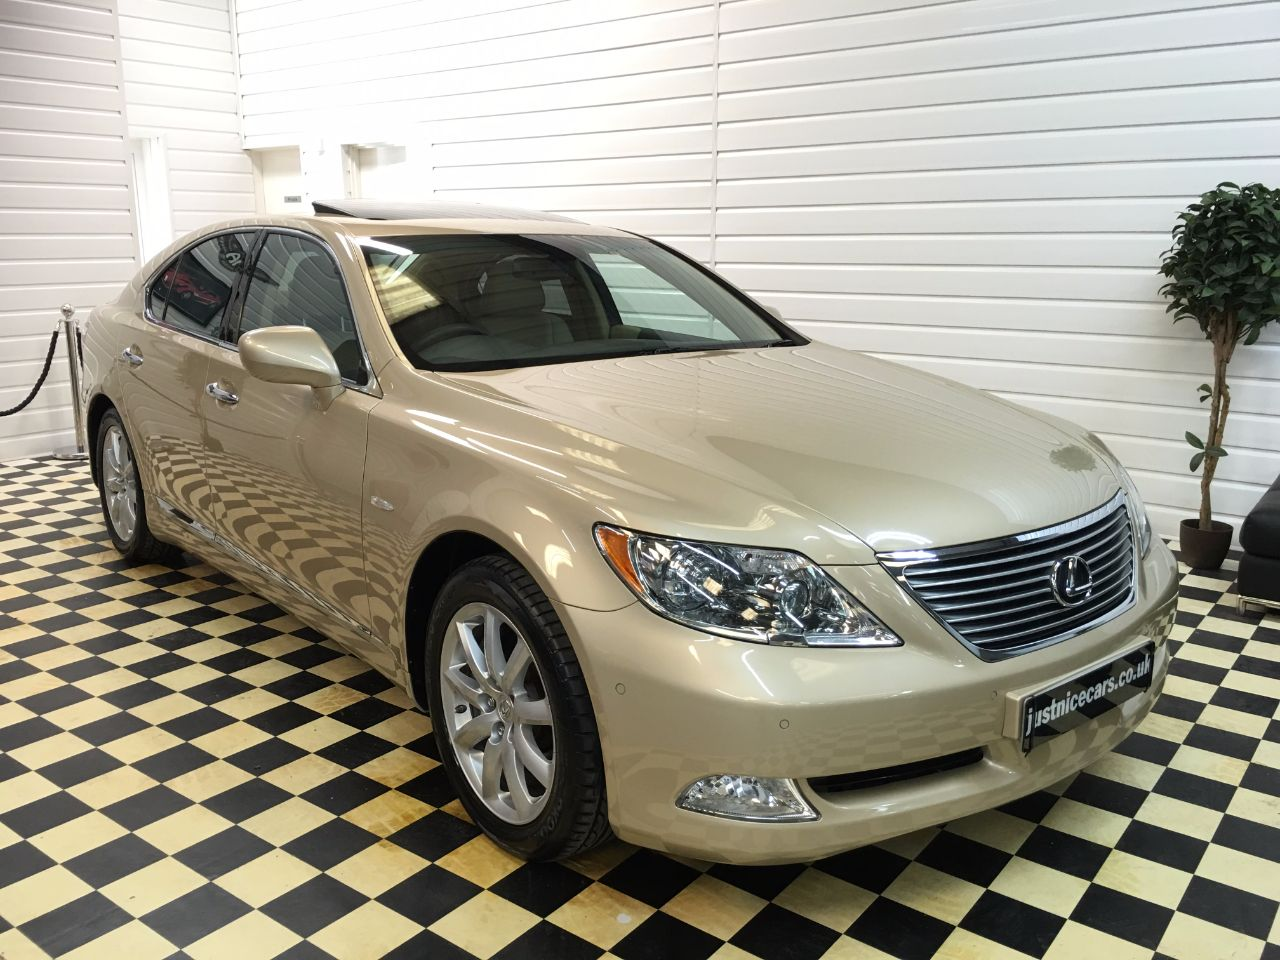 Lexus LS 460 4.6 V8 SE 4dr Automatic Saloon Petrol Amberley Gold Pearl